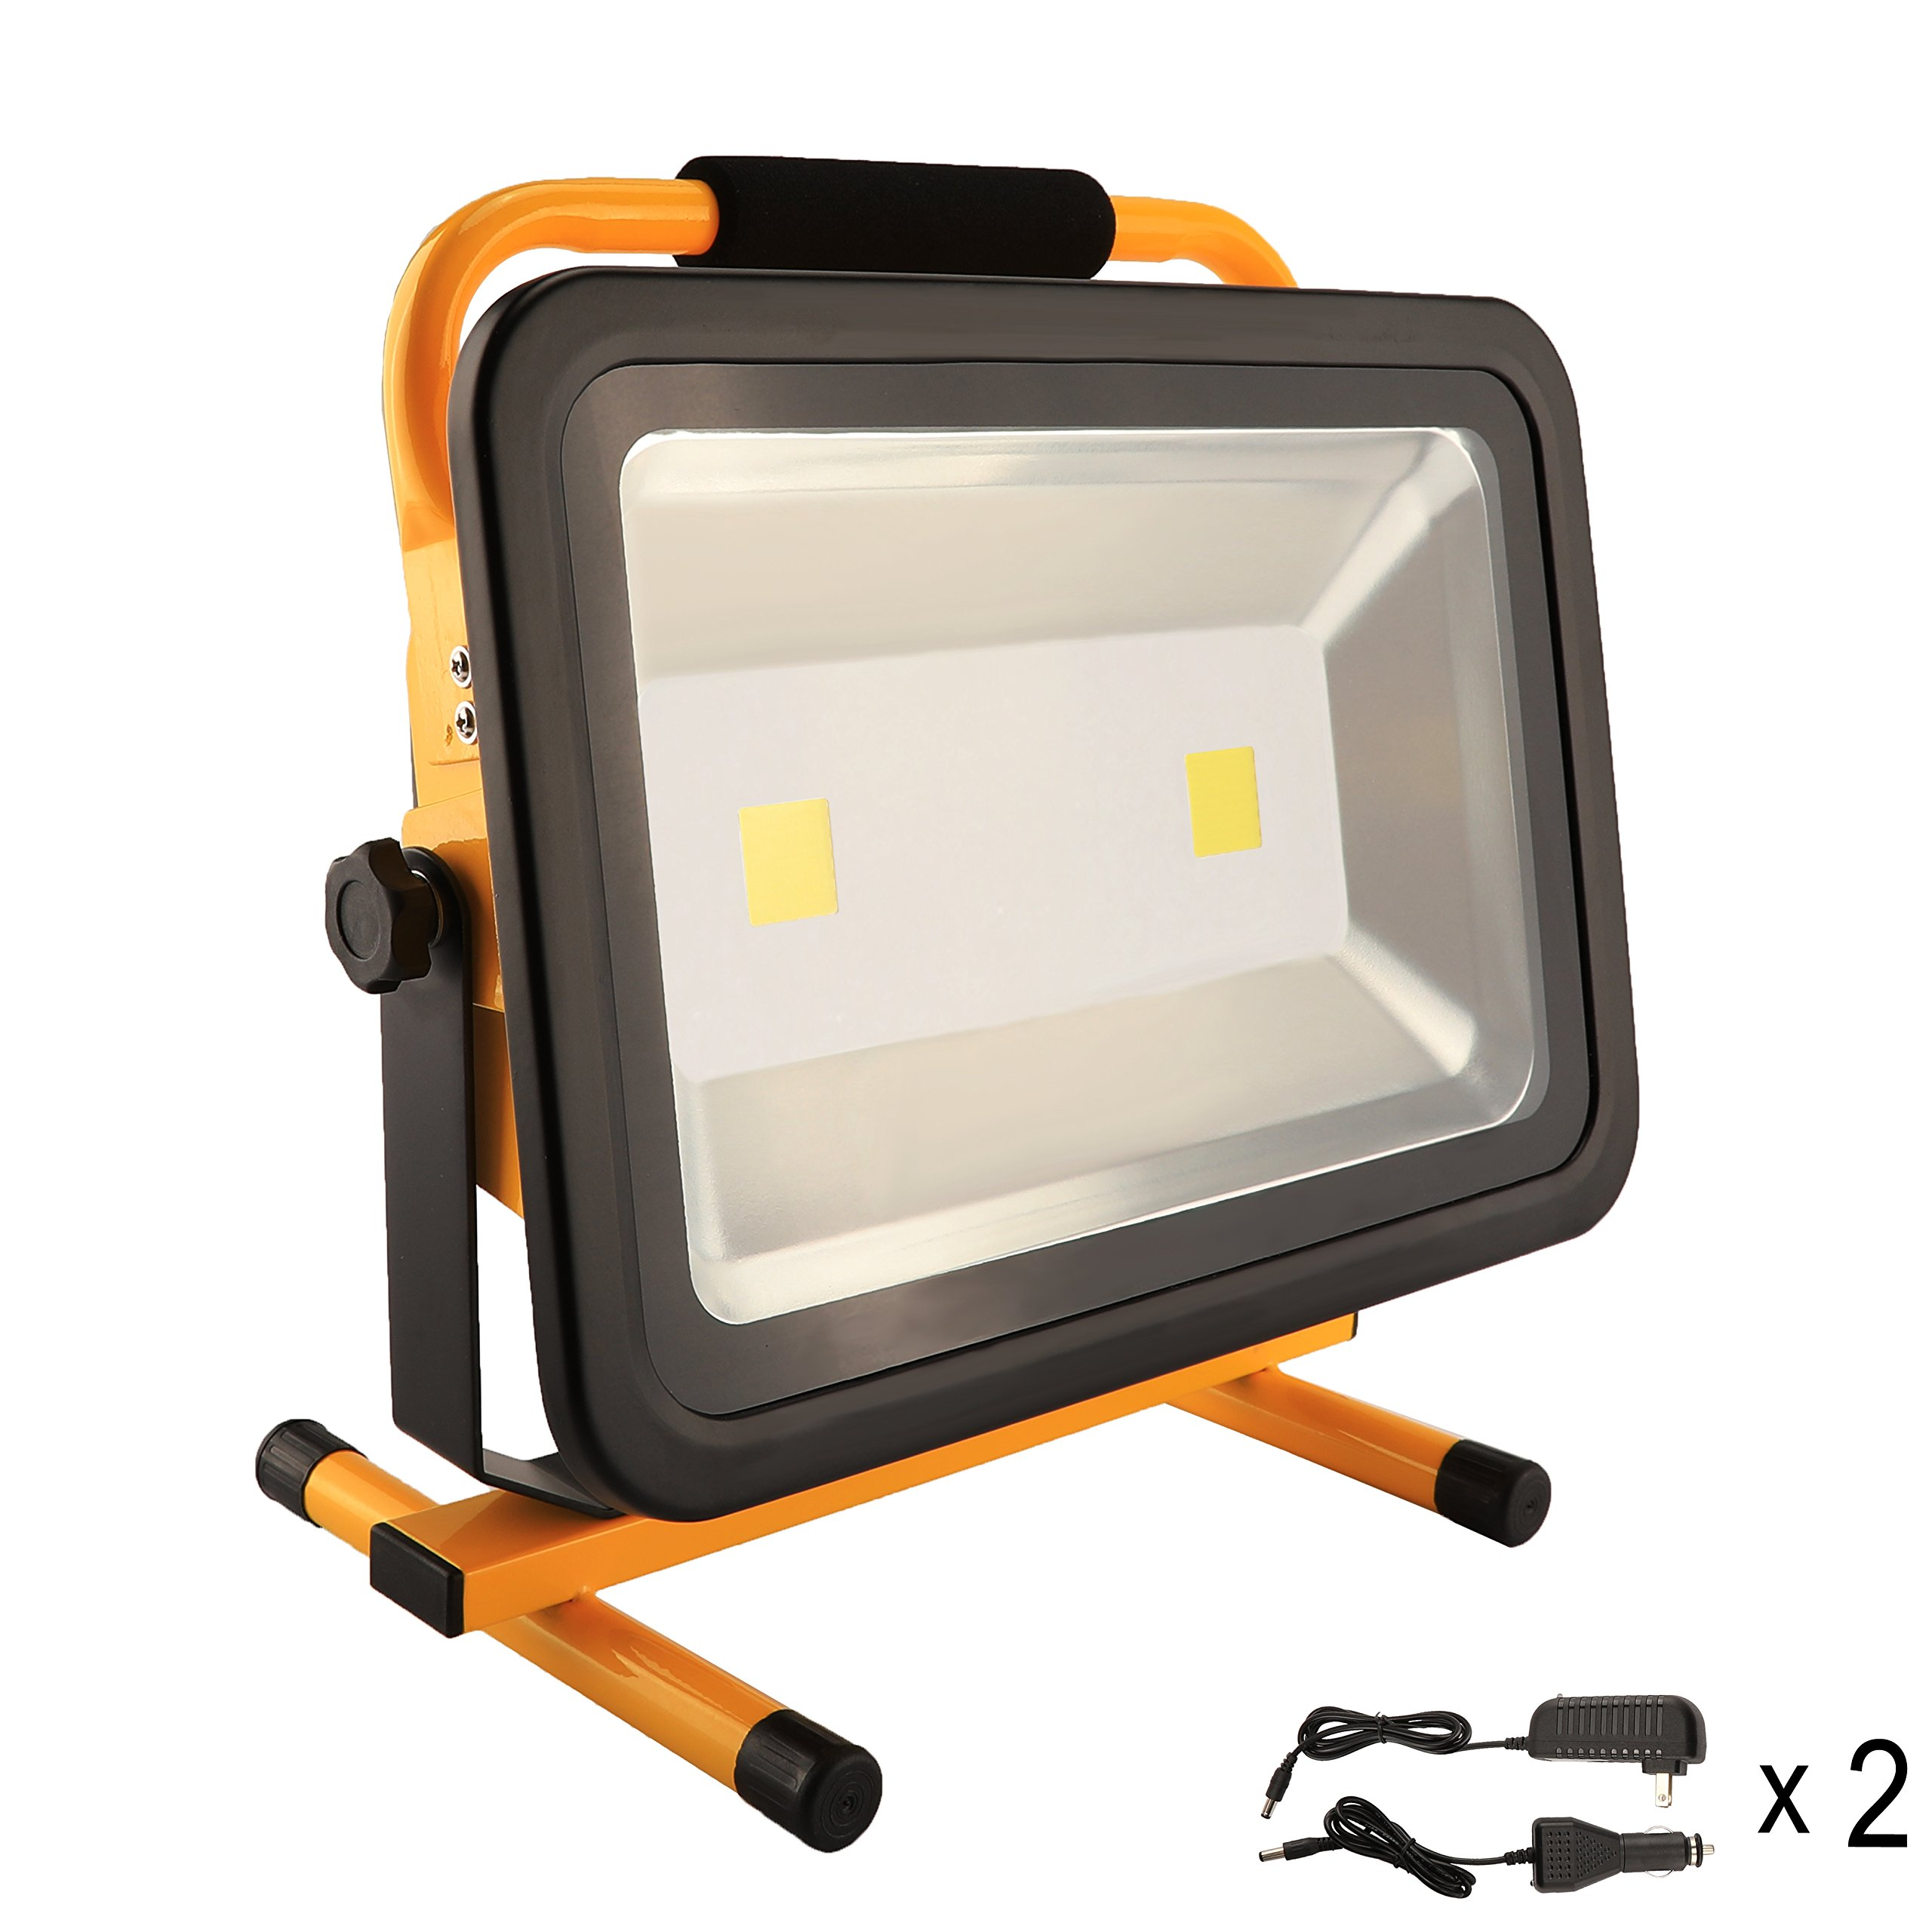 100W LED Work Light Rechargeable Portable Flood Light Battery Powered Flood Light for Outdoor Lighting,Camping,Hiking,Fishing,Car Repairing,Construction Site,8 HRS Running Time